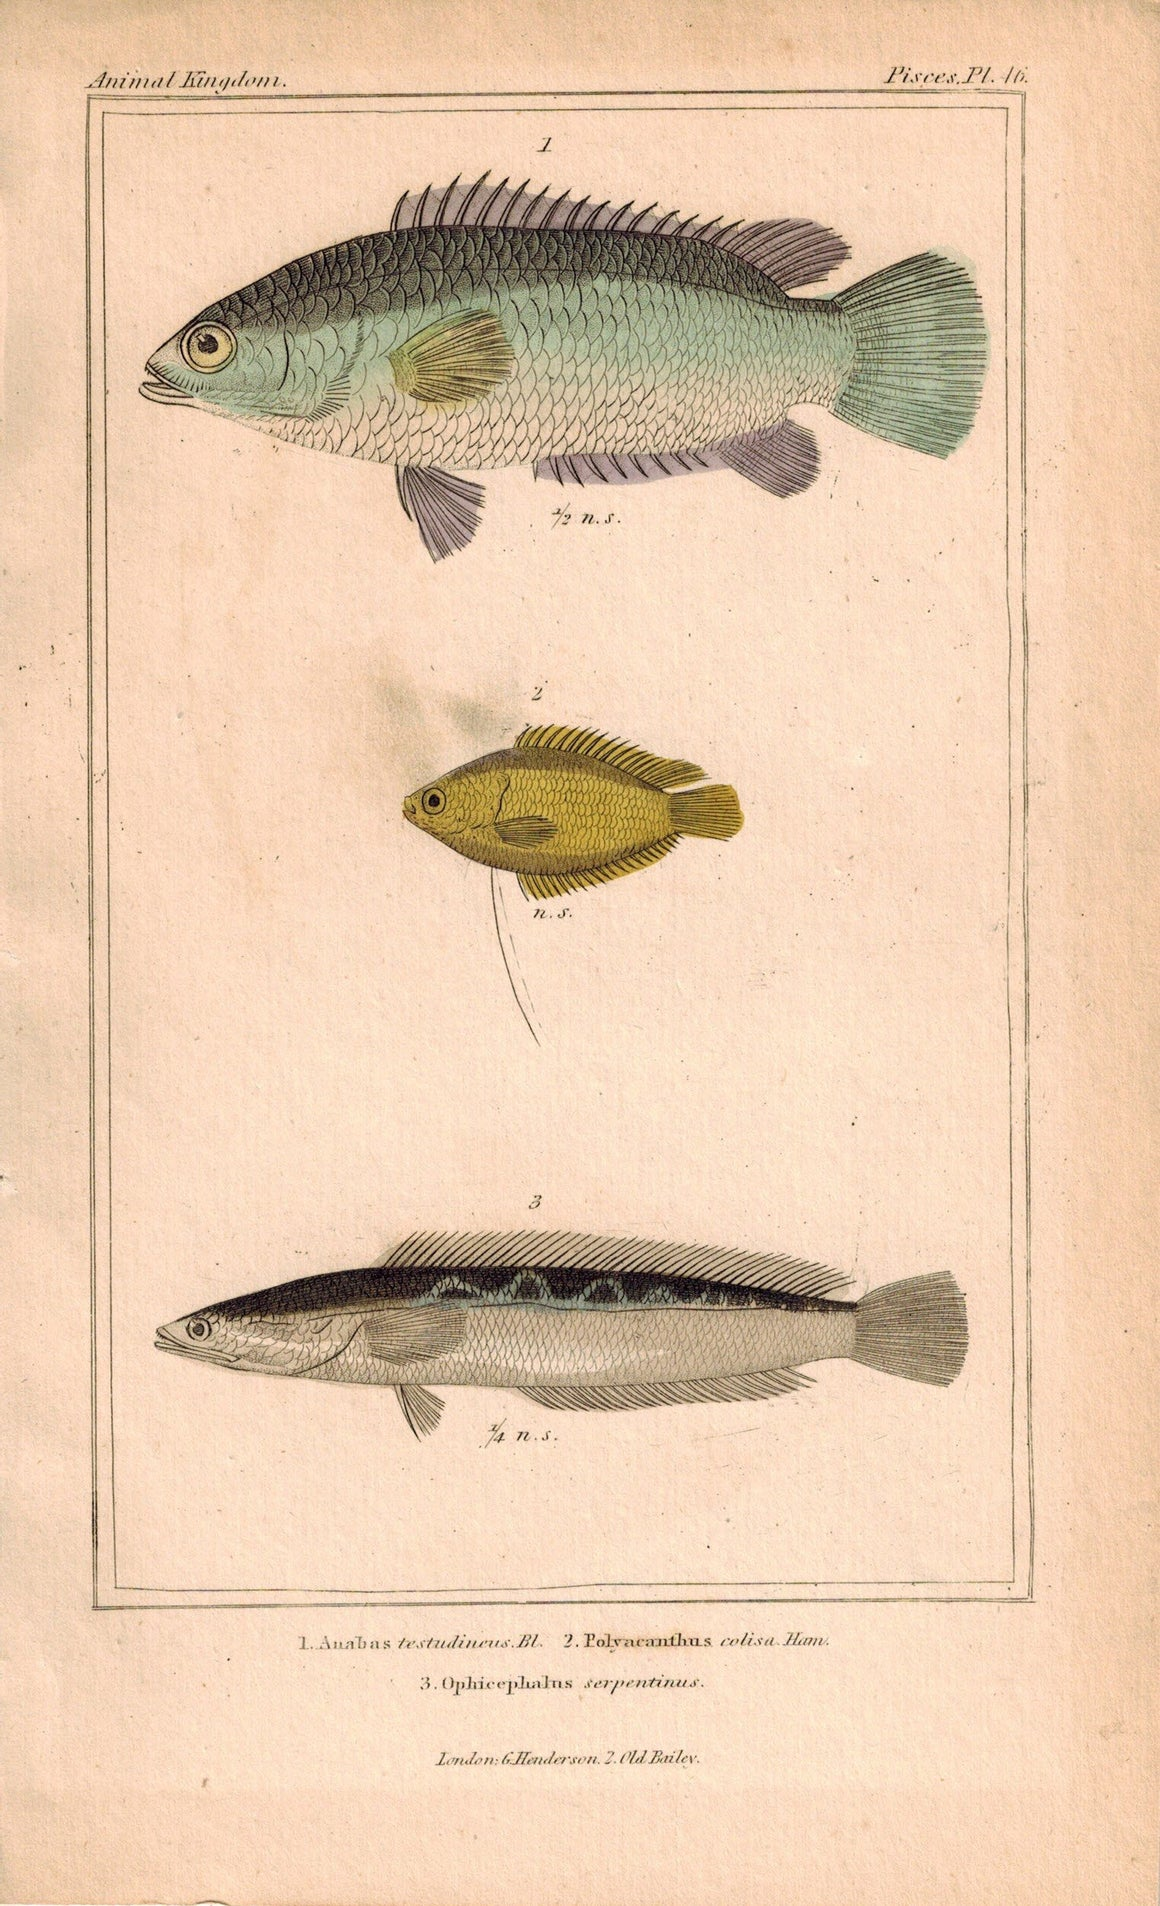 Anabas, Polyacanthus, Ophicephalus Fish 1834 Engraved Antique Cuvier Print 46